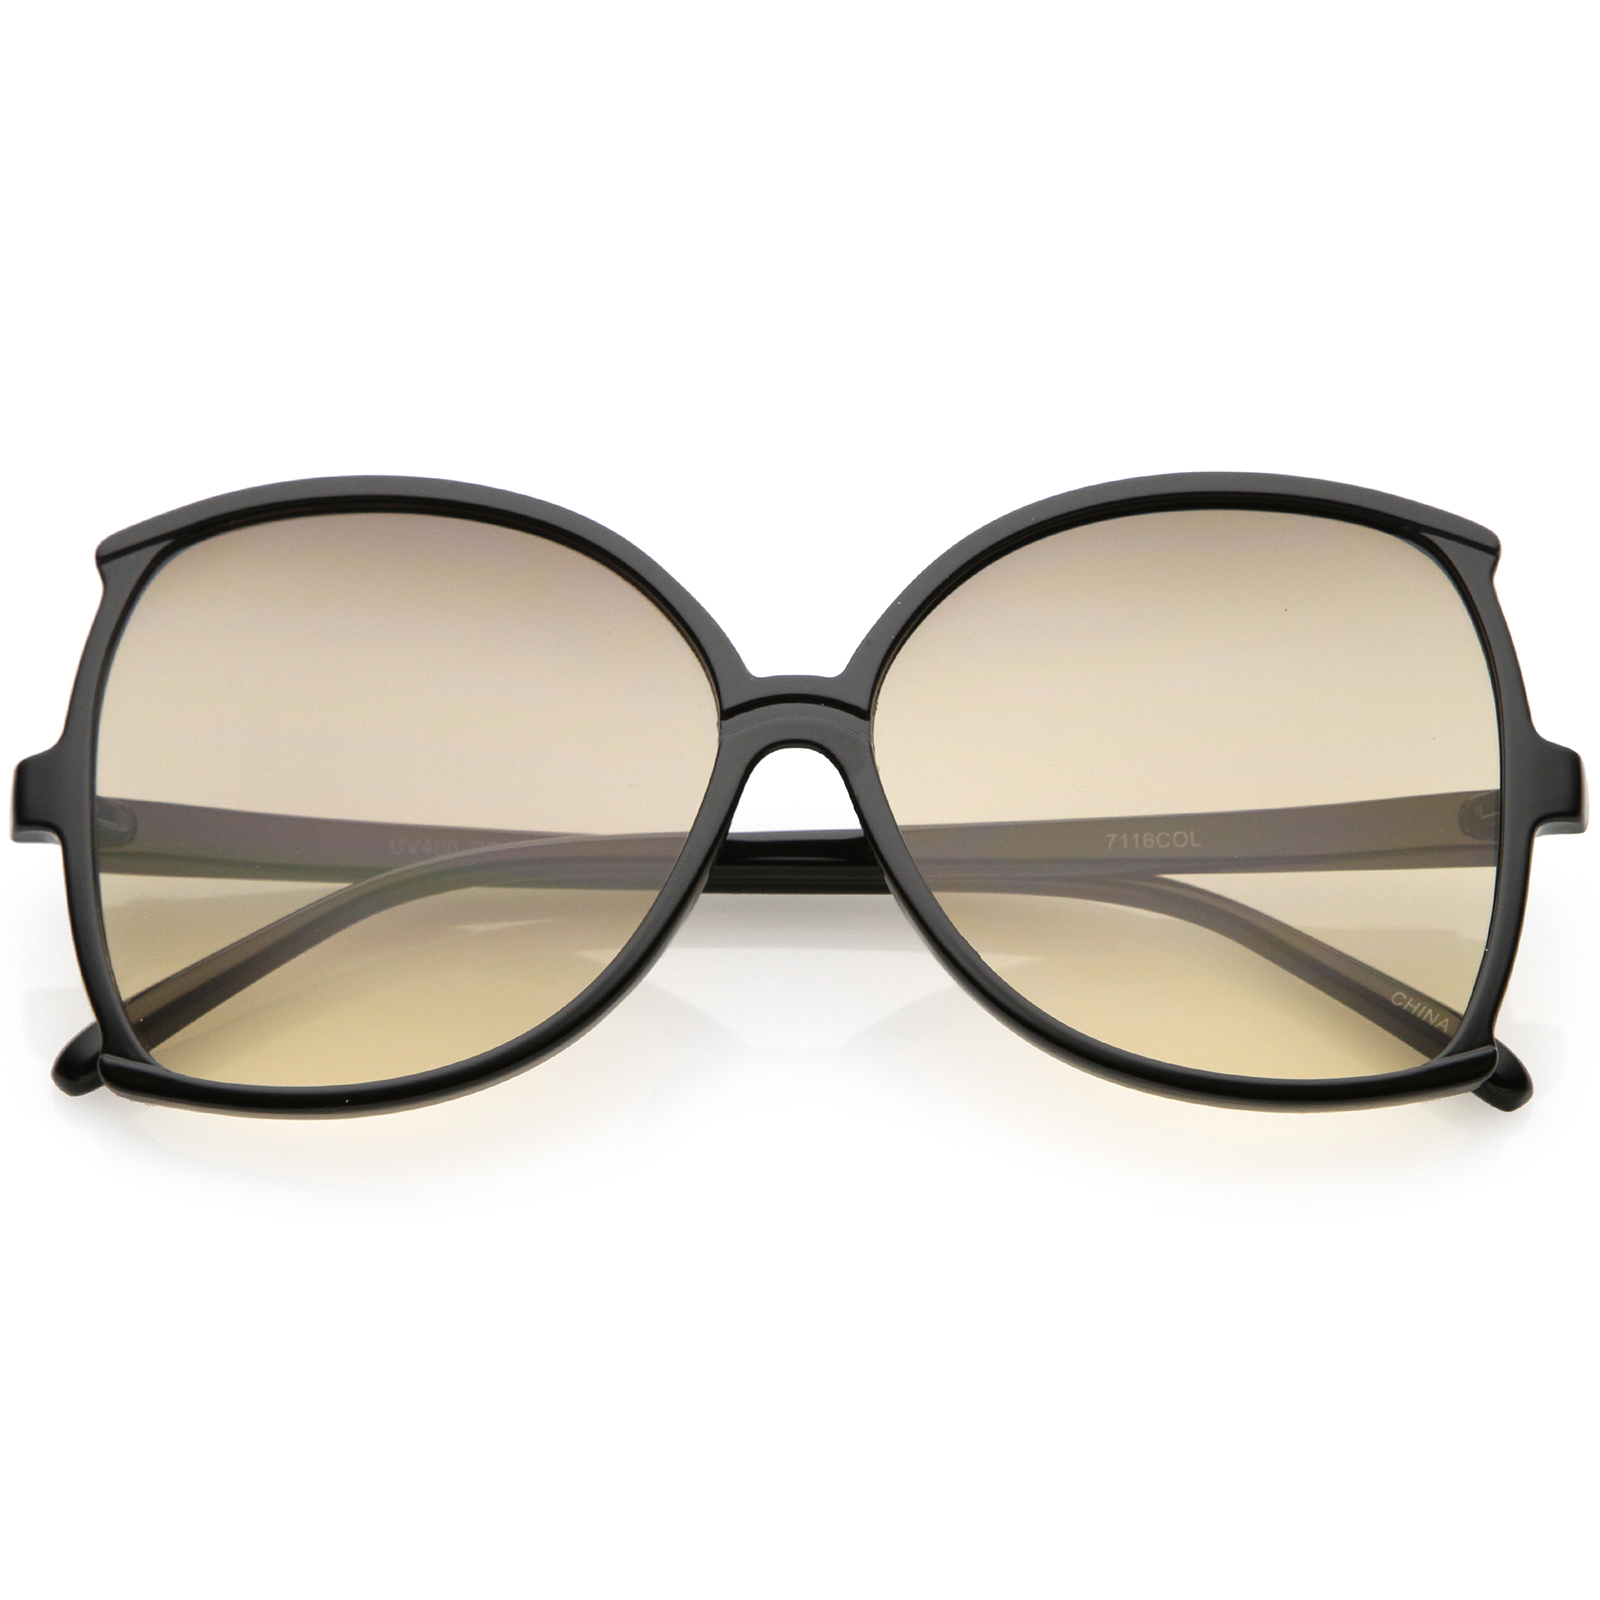 sunglassLA - Women's Oversize Butterfly Sunglasses Slim Arms Color Tinted Lens 61mm - 61mm